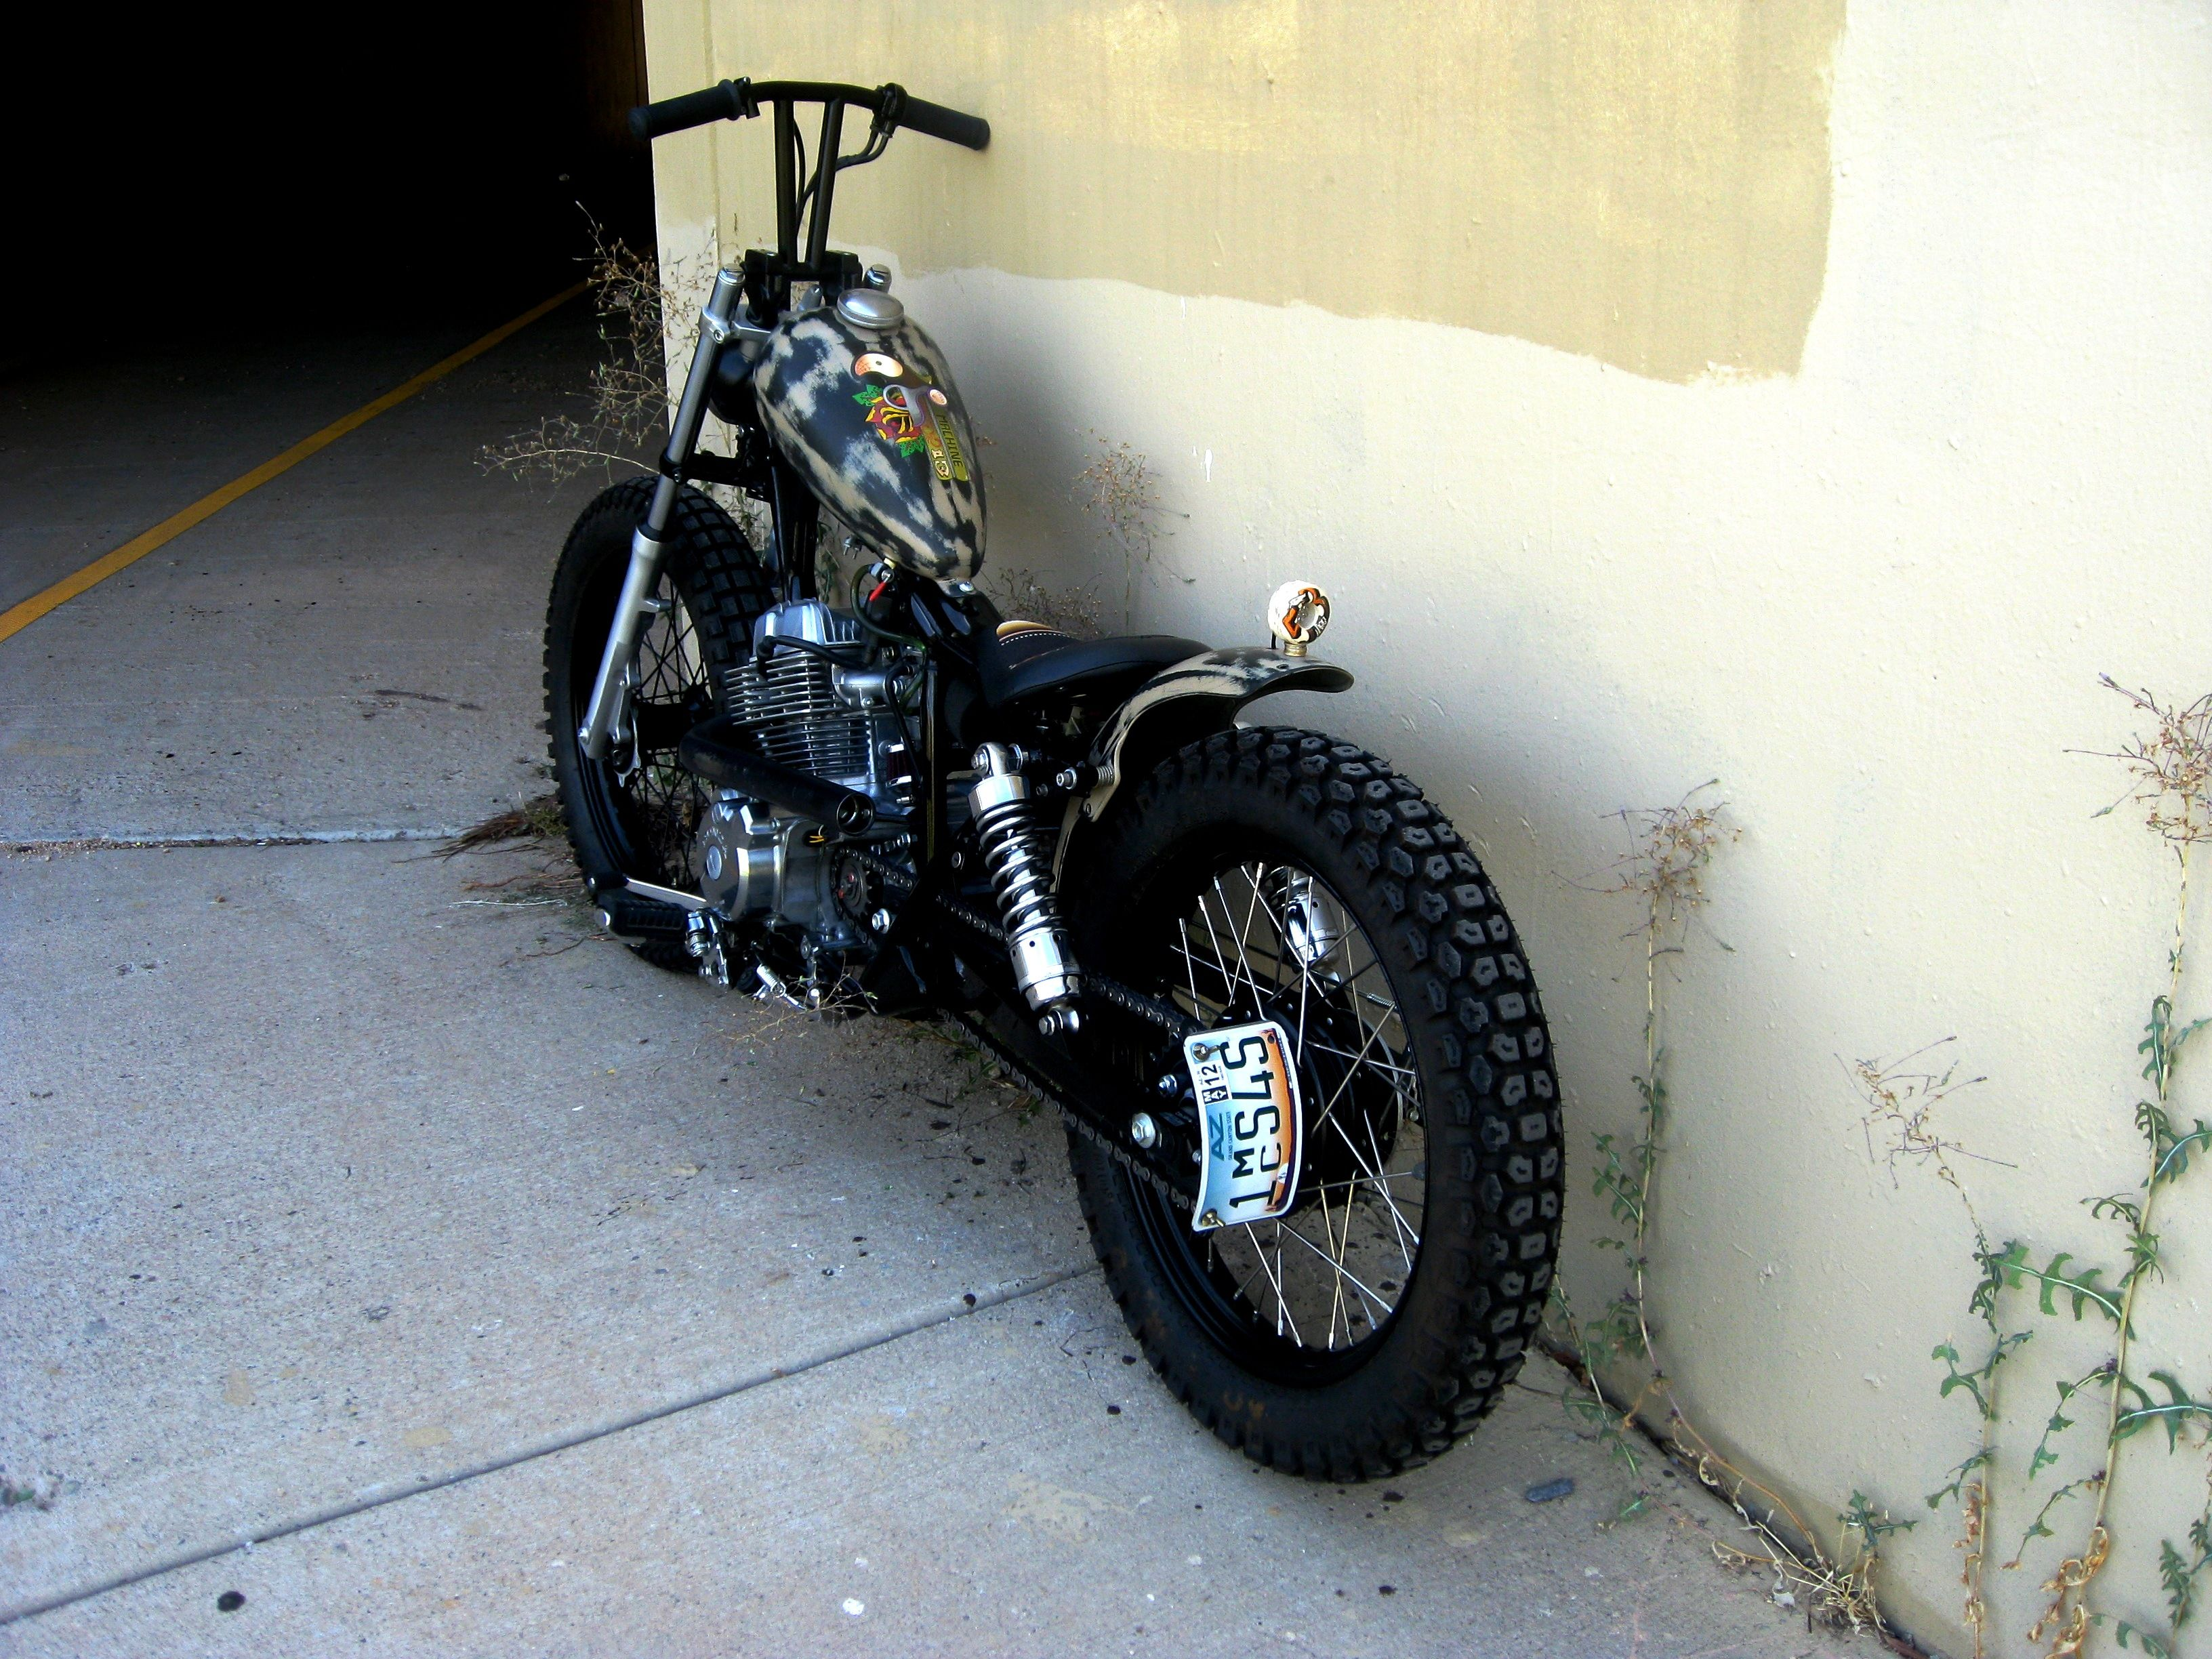 hight resolution of  honda rebel bobber motorcycle